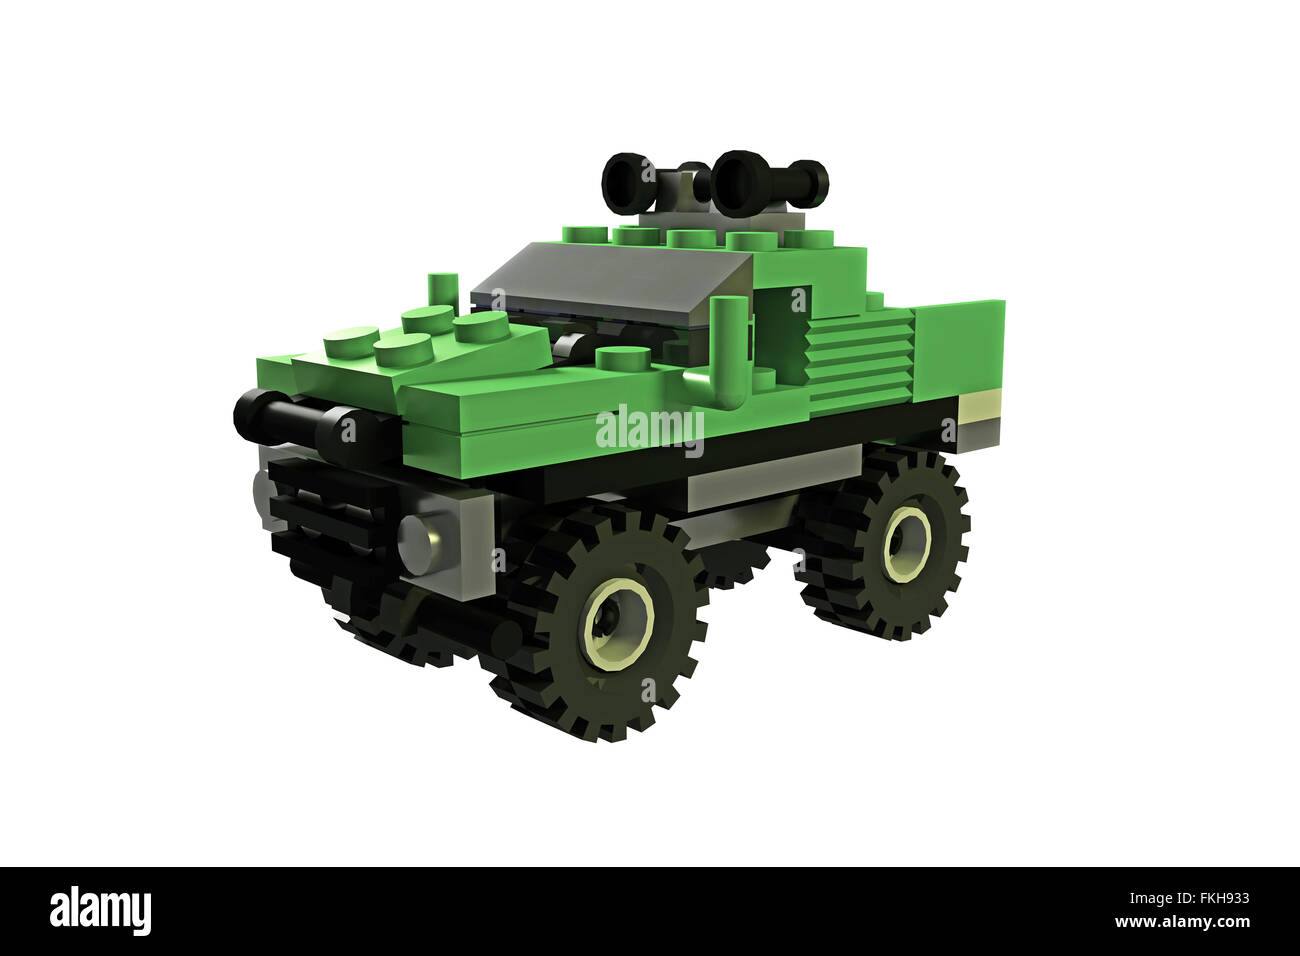 off road toy isolated on white background - Stock Image